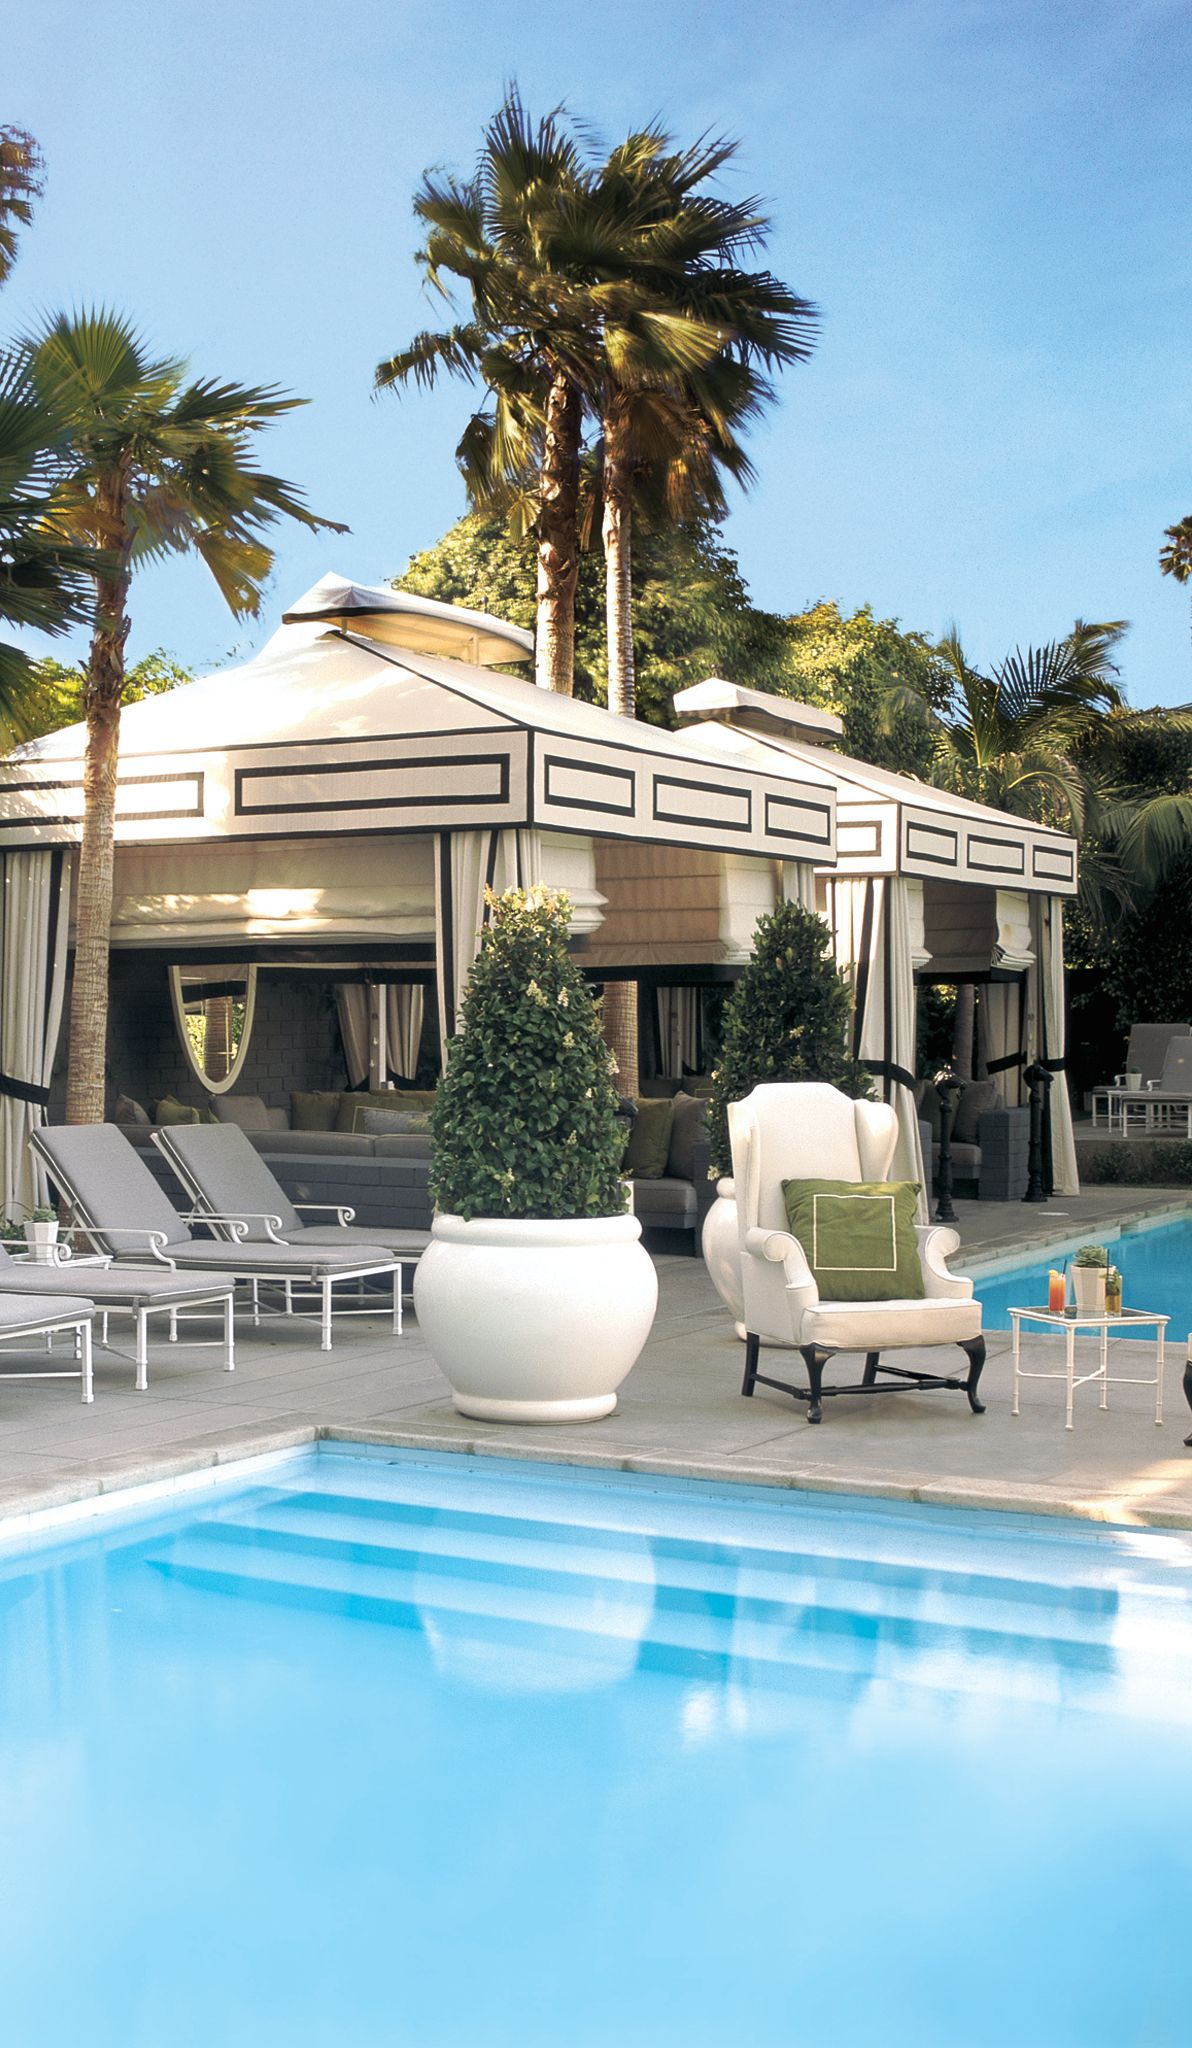 Southern California Luxury Resorts: Viceroy Santa Monica (Santa Monica, CA